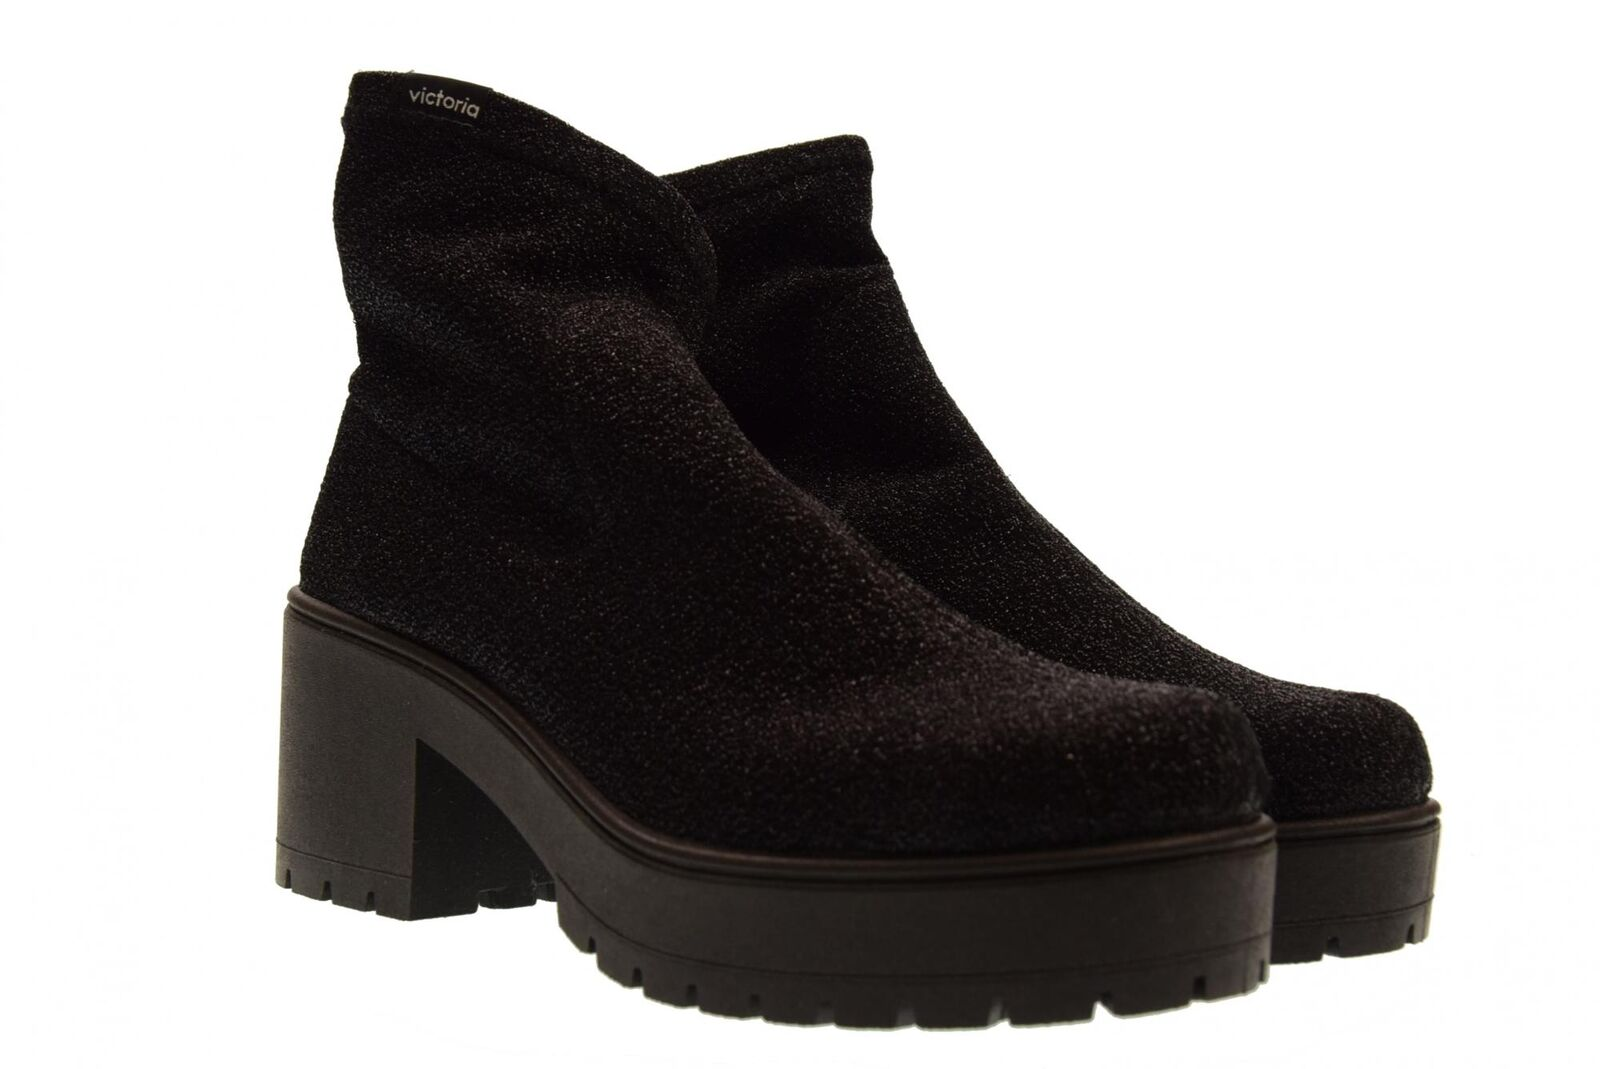 Victoria A18us women's ankle boots shoes with heel 095124